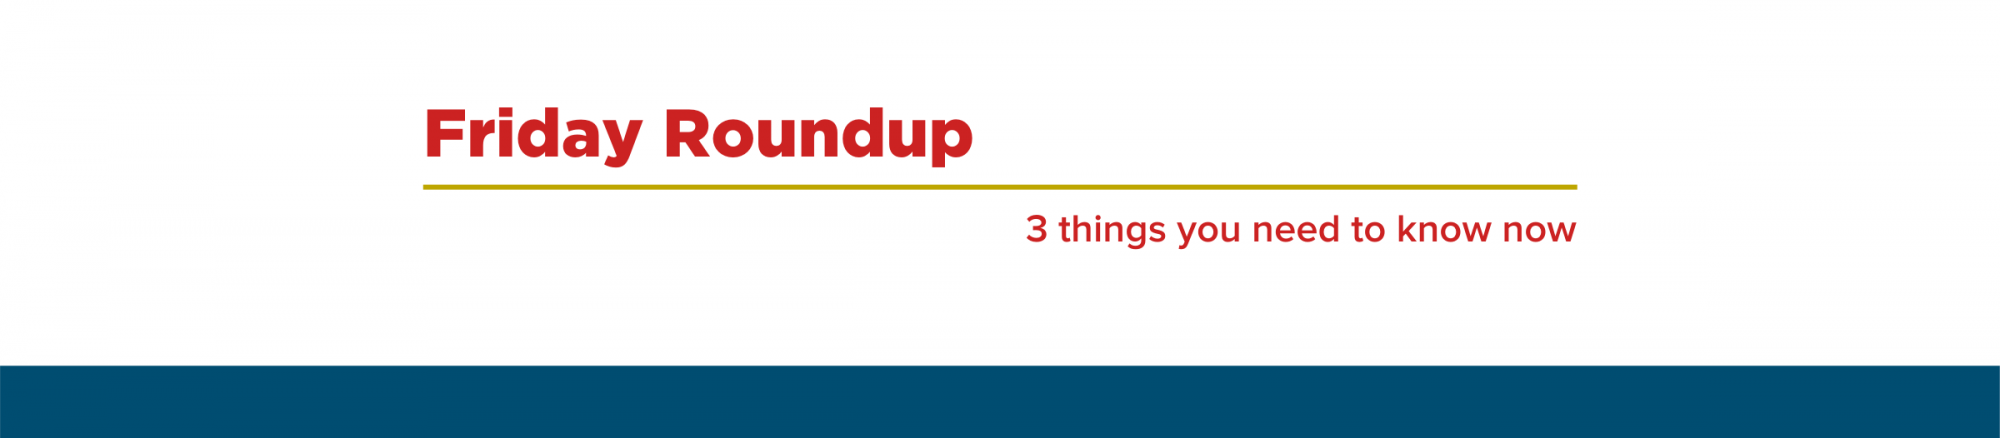 Friday Roundup: Post-COVID-19 Planning and Management Tips